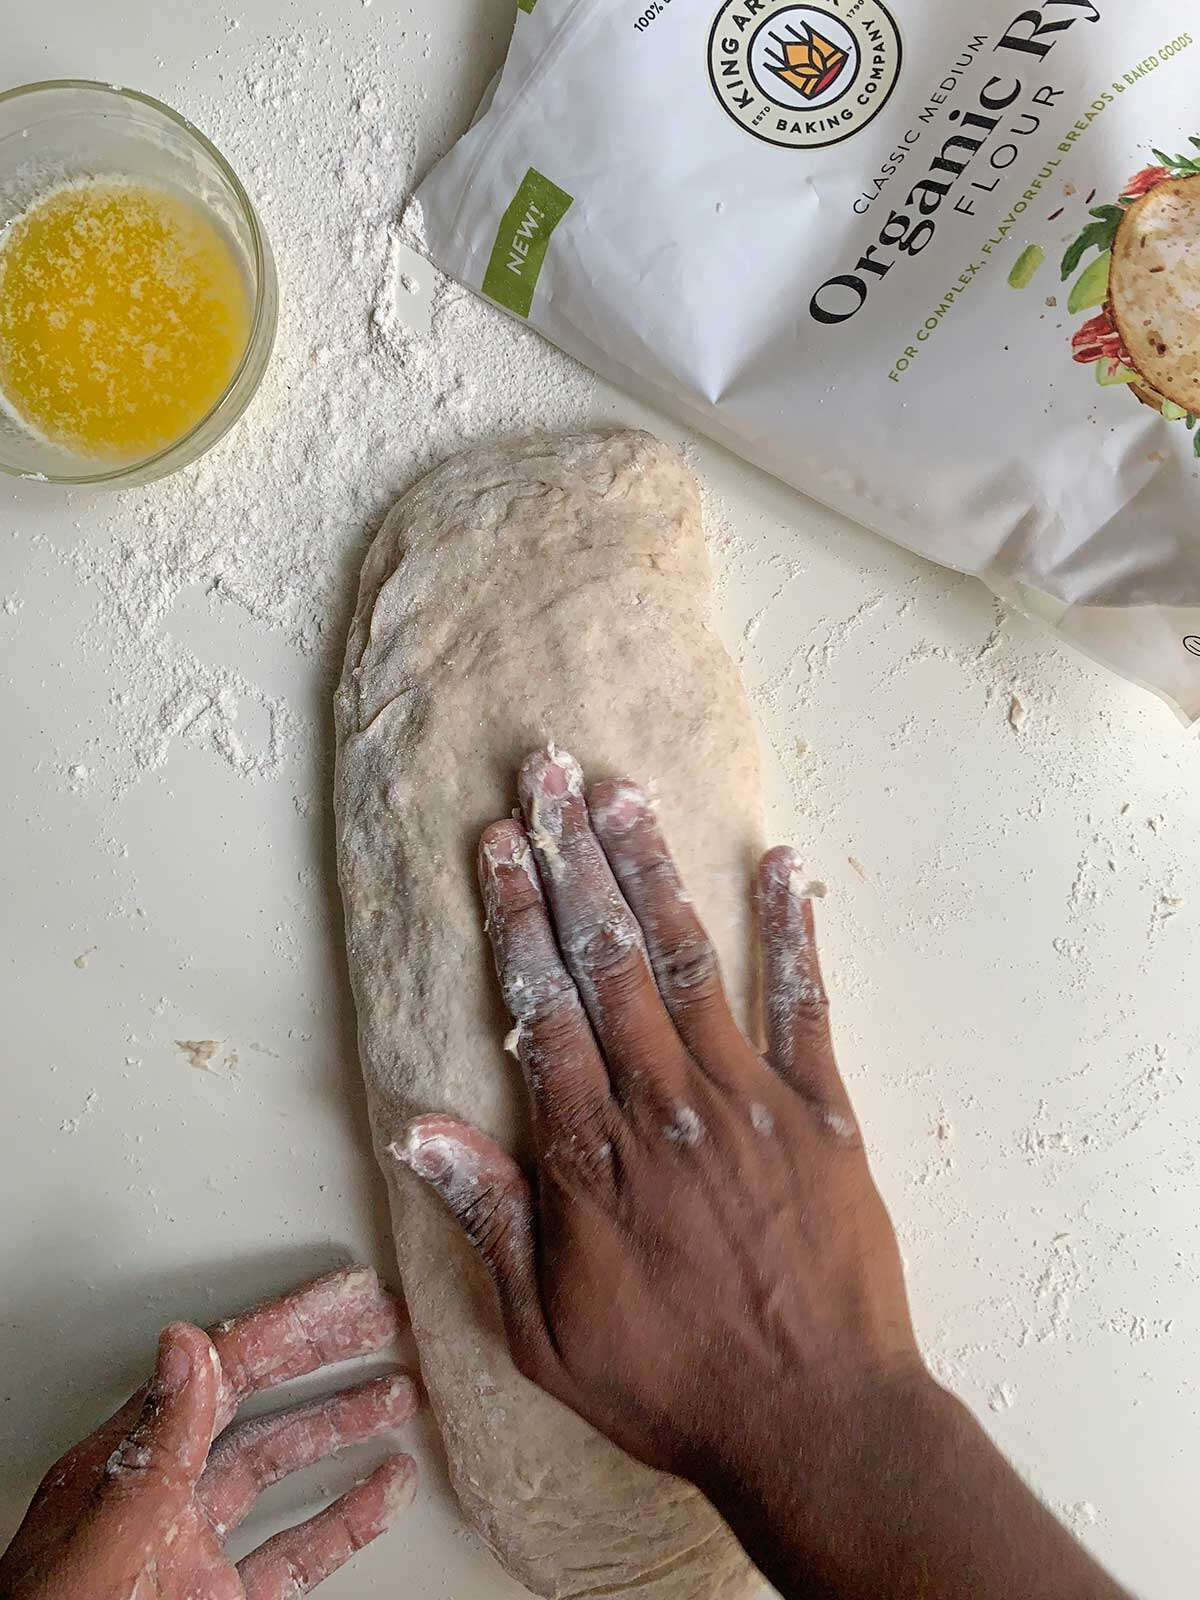 Hands shaping the focaccia dough